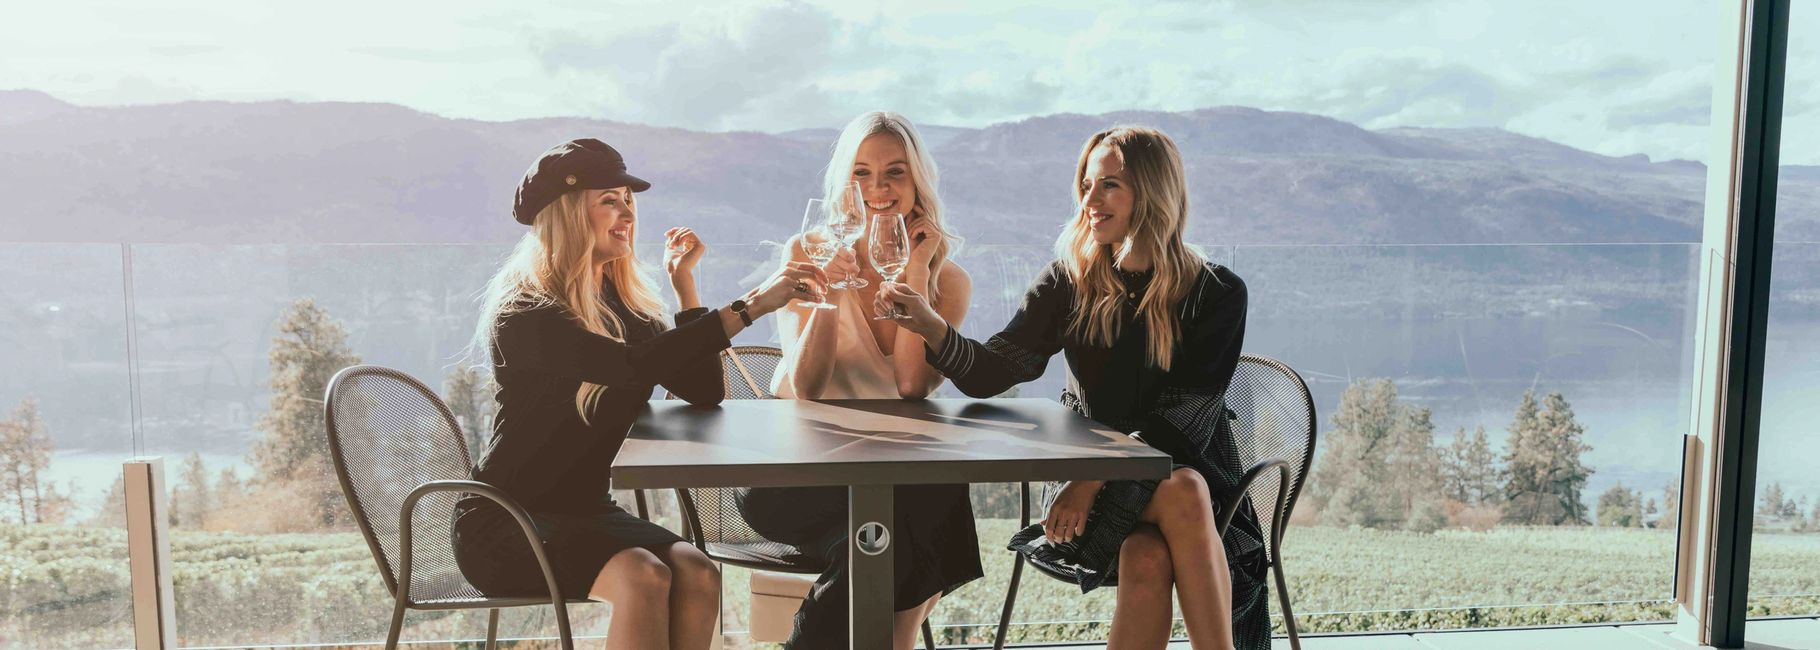 Women raising wine glasses on patio.